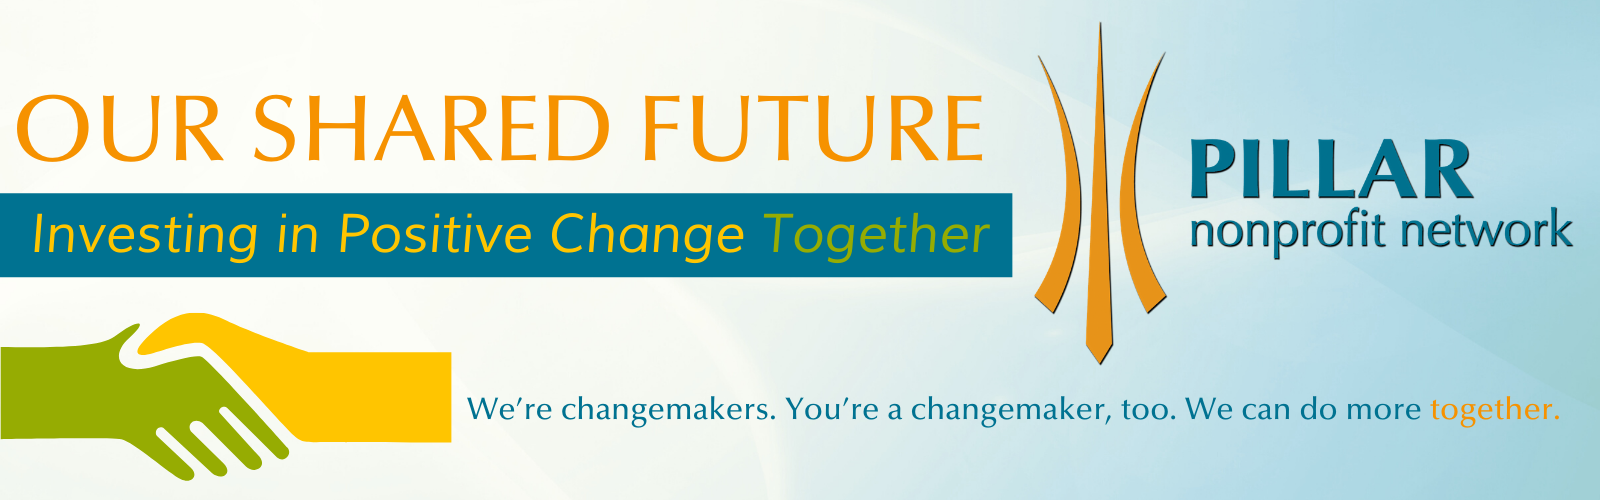 Our Shared Future: Investing In Positive Change Together